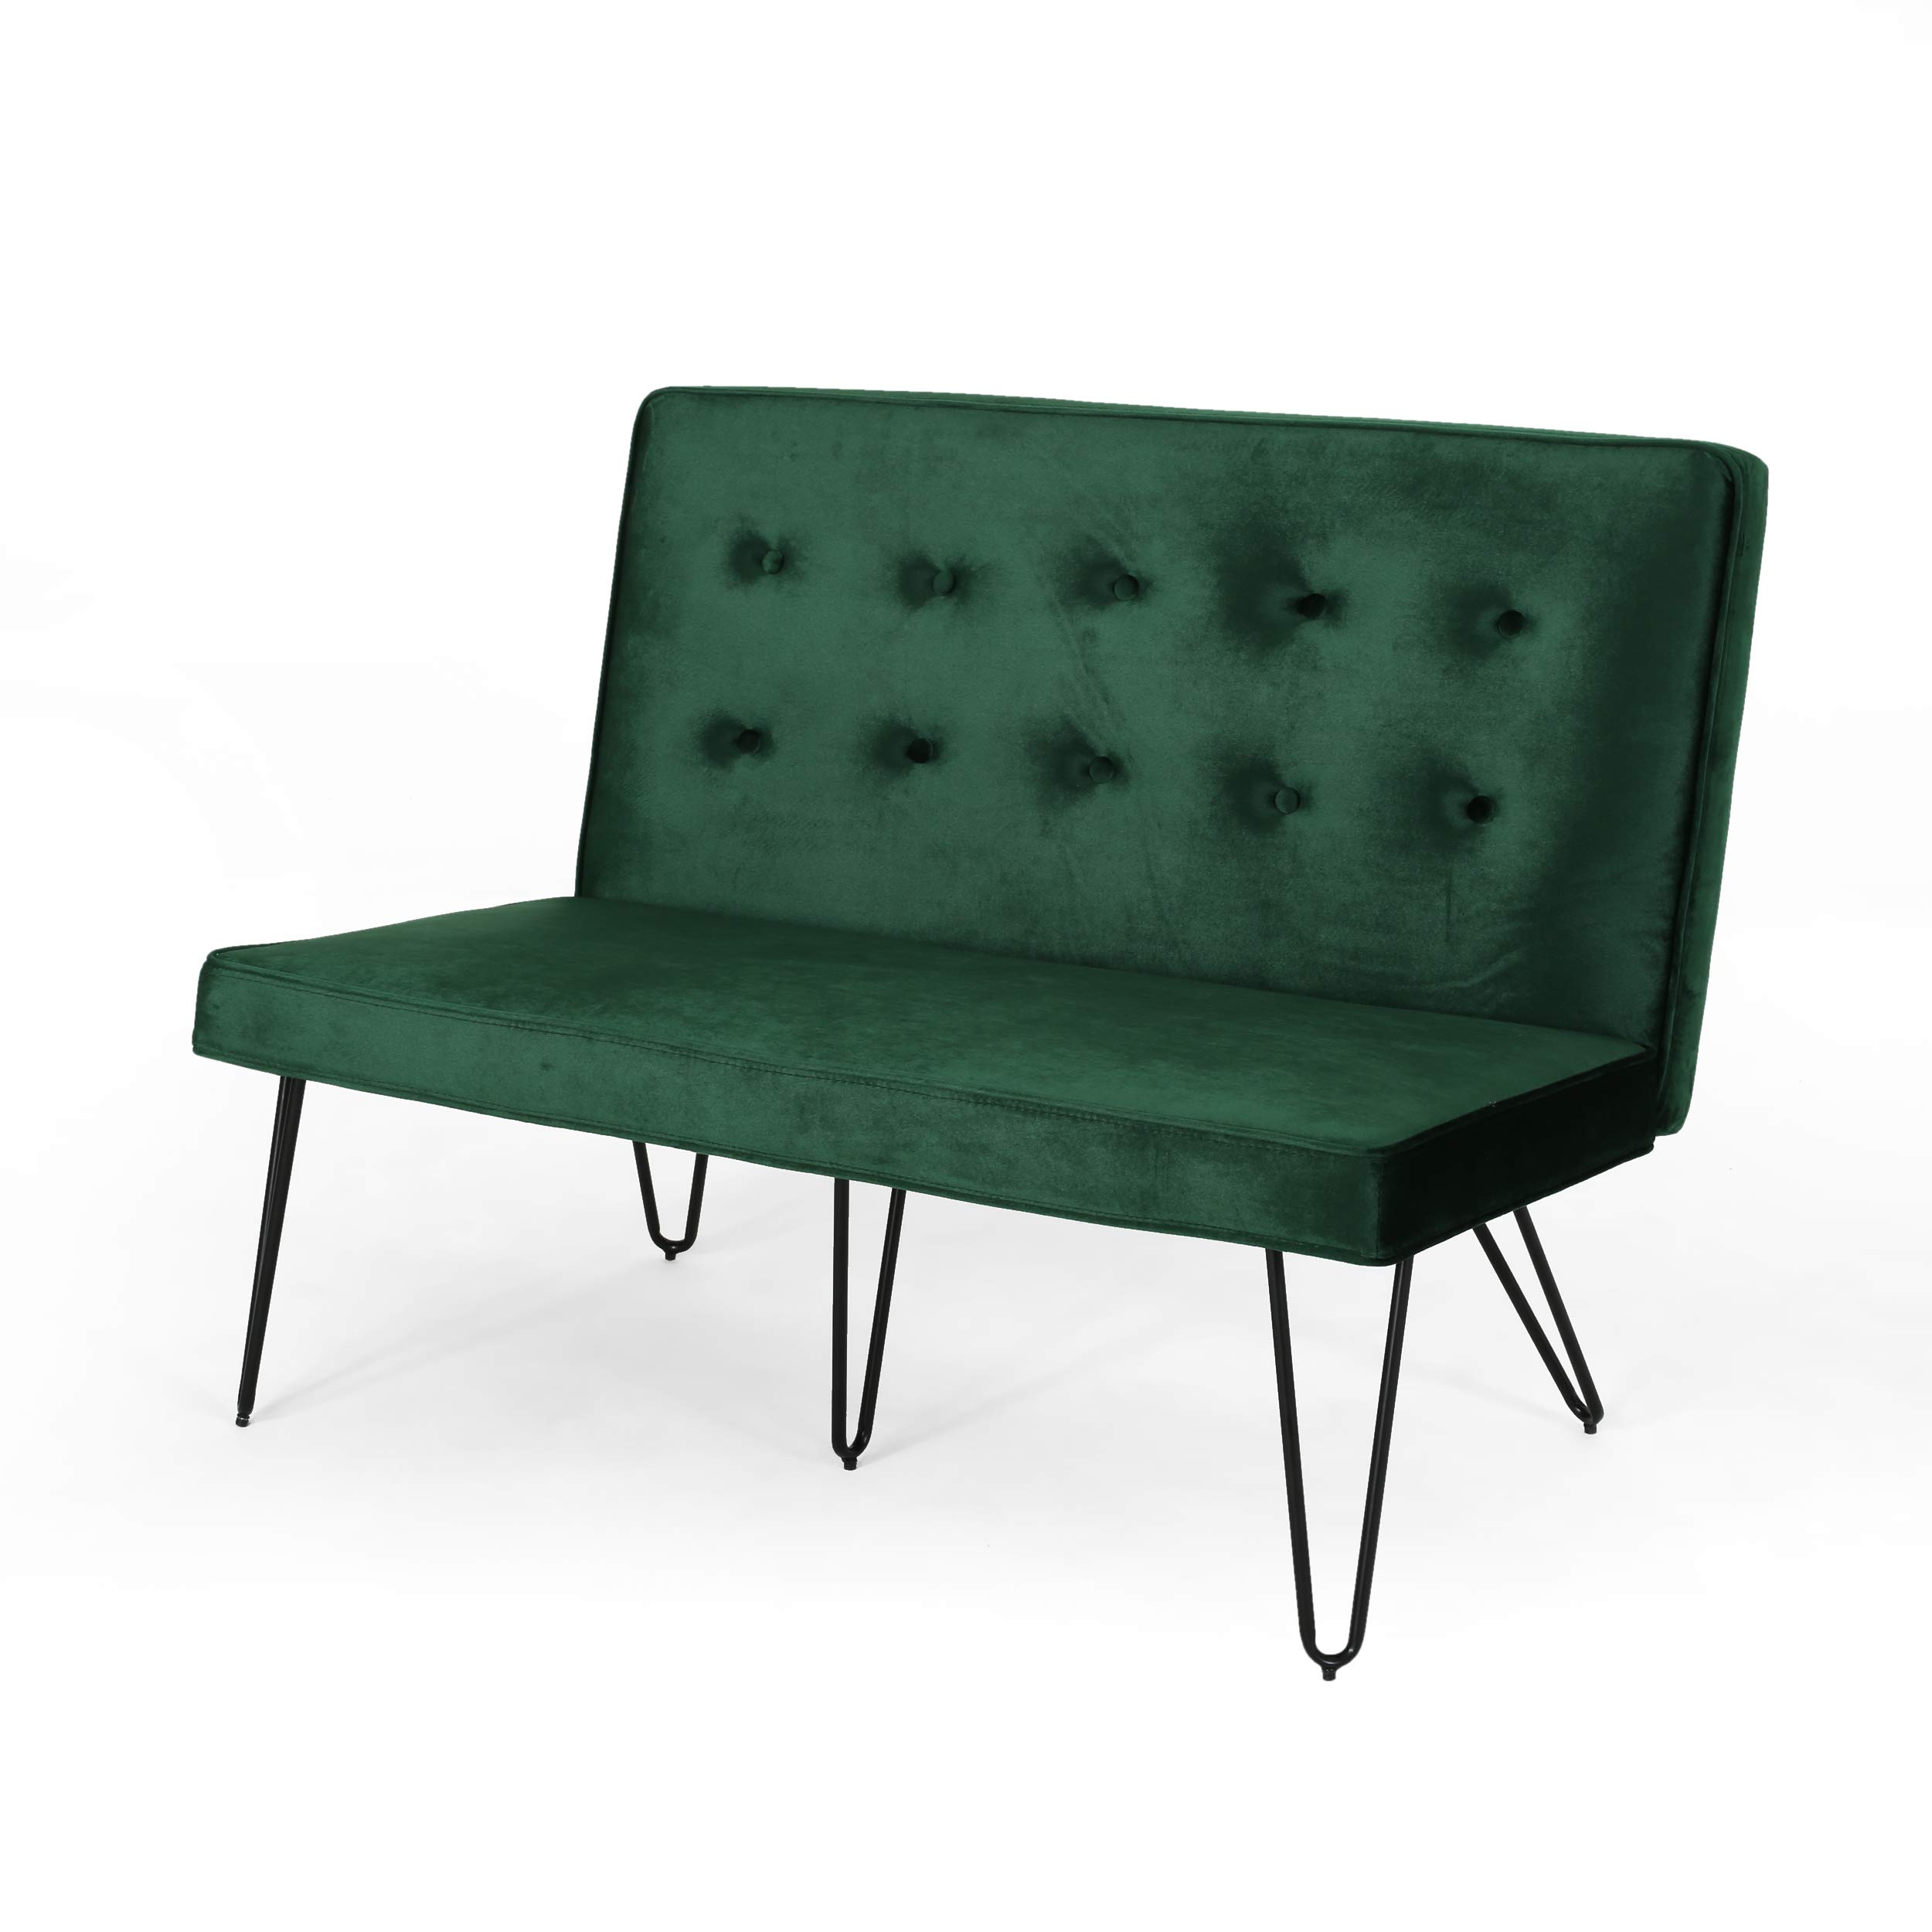 Beatrice Minimalist Dining Bench Settee with Tufted Velvet Cushion and Iron Legs - Emerald and Black by Great Deal Furniture (Image #3)